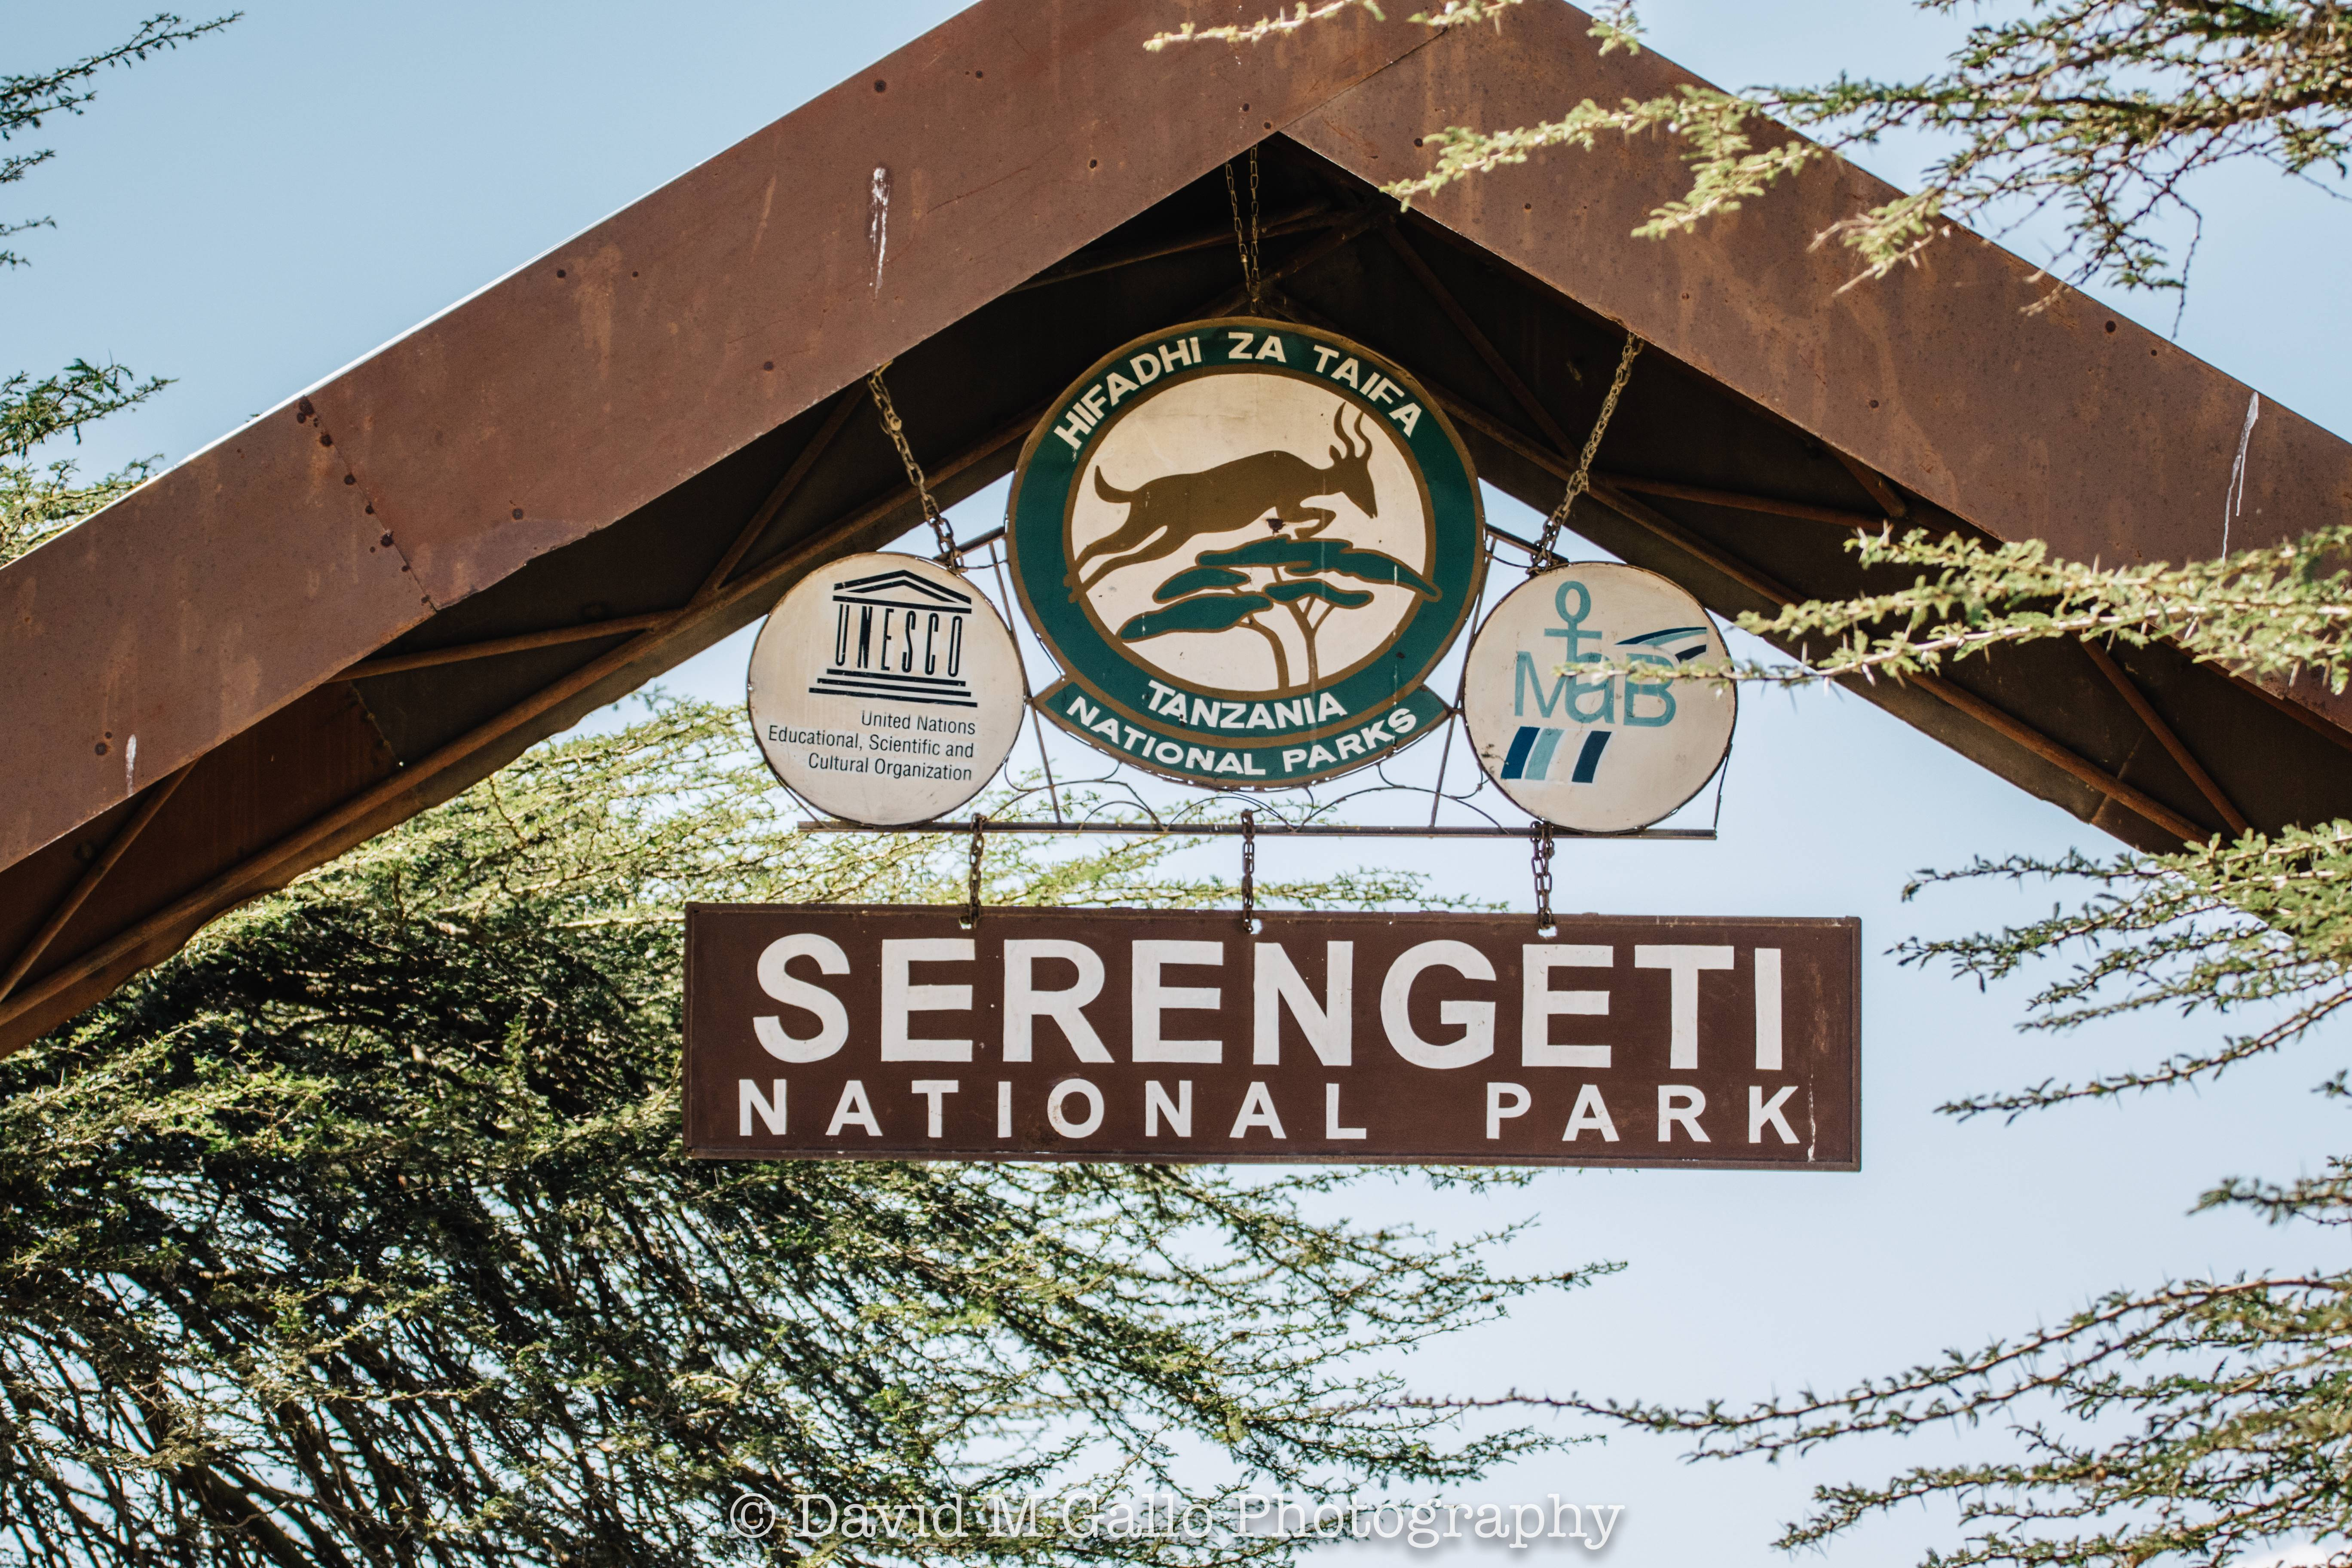 The Serengeti is easily Africa's most famous National Park. On our second day with Pristine Trails we drove in our open-air vehicle through the vast plains of Tanzania while witnessing the Great Migration. Read more at thefivefoottraveler.com